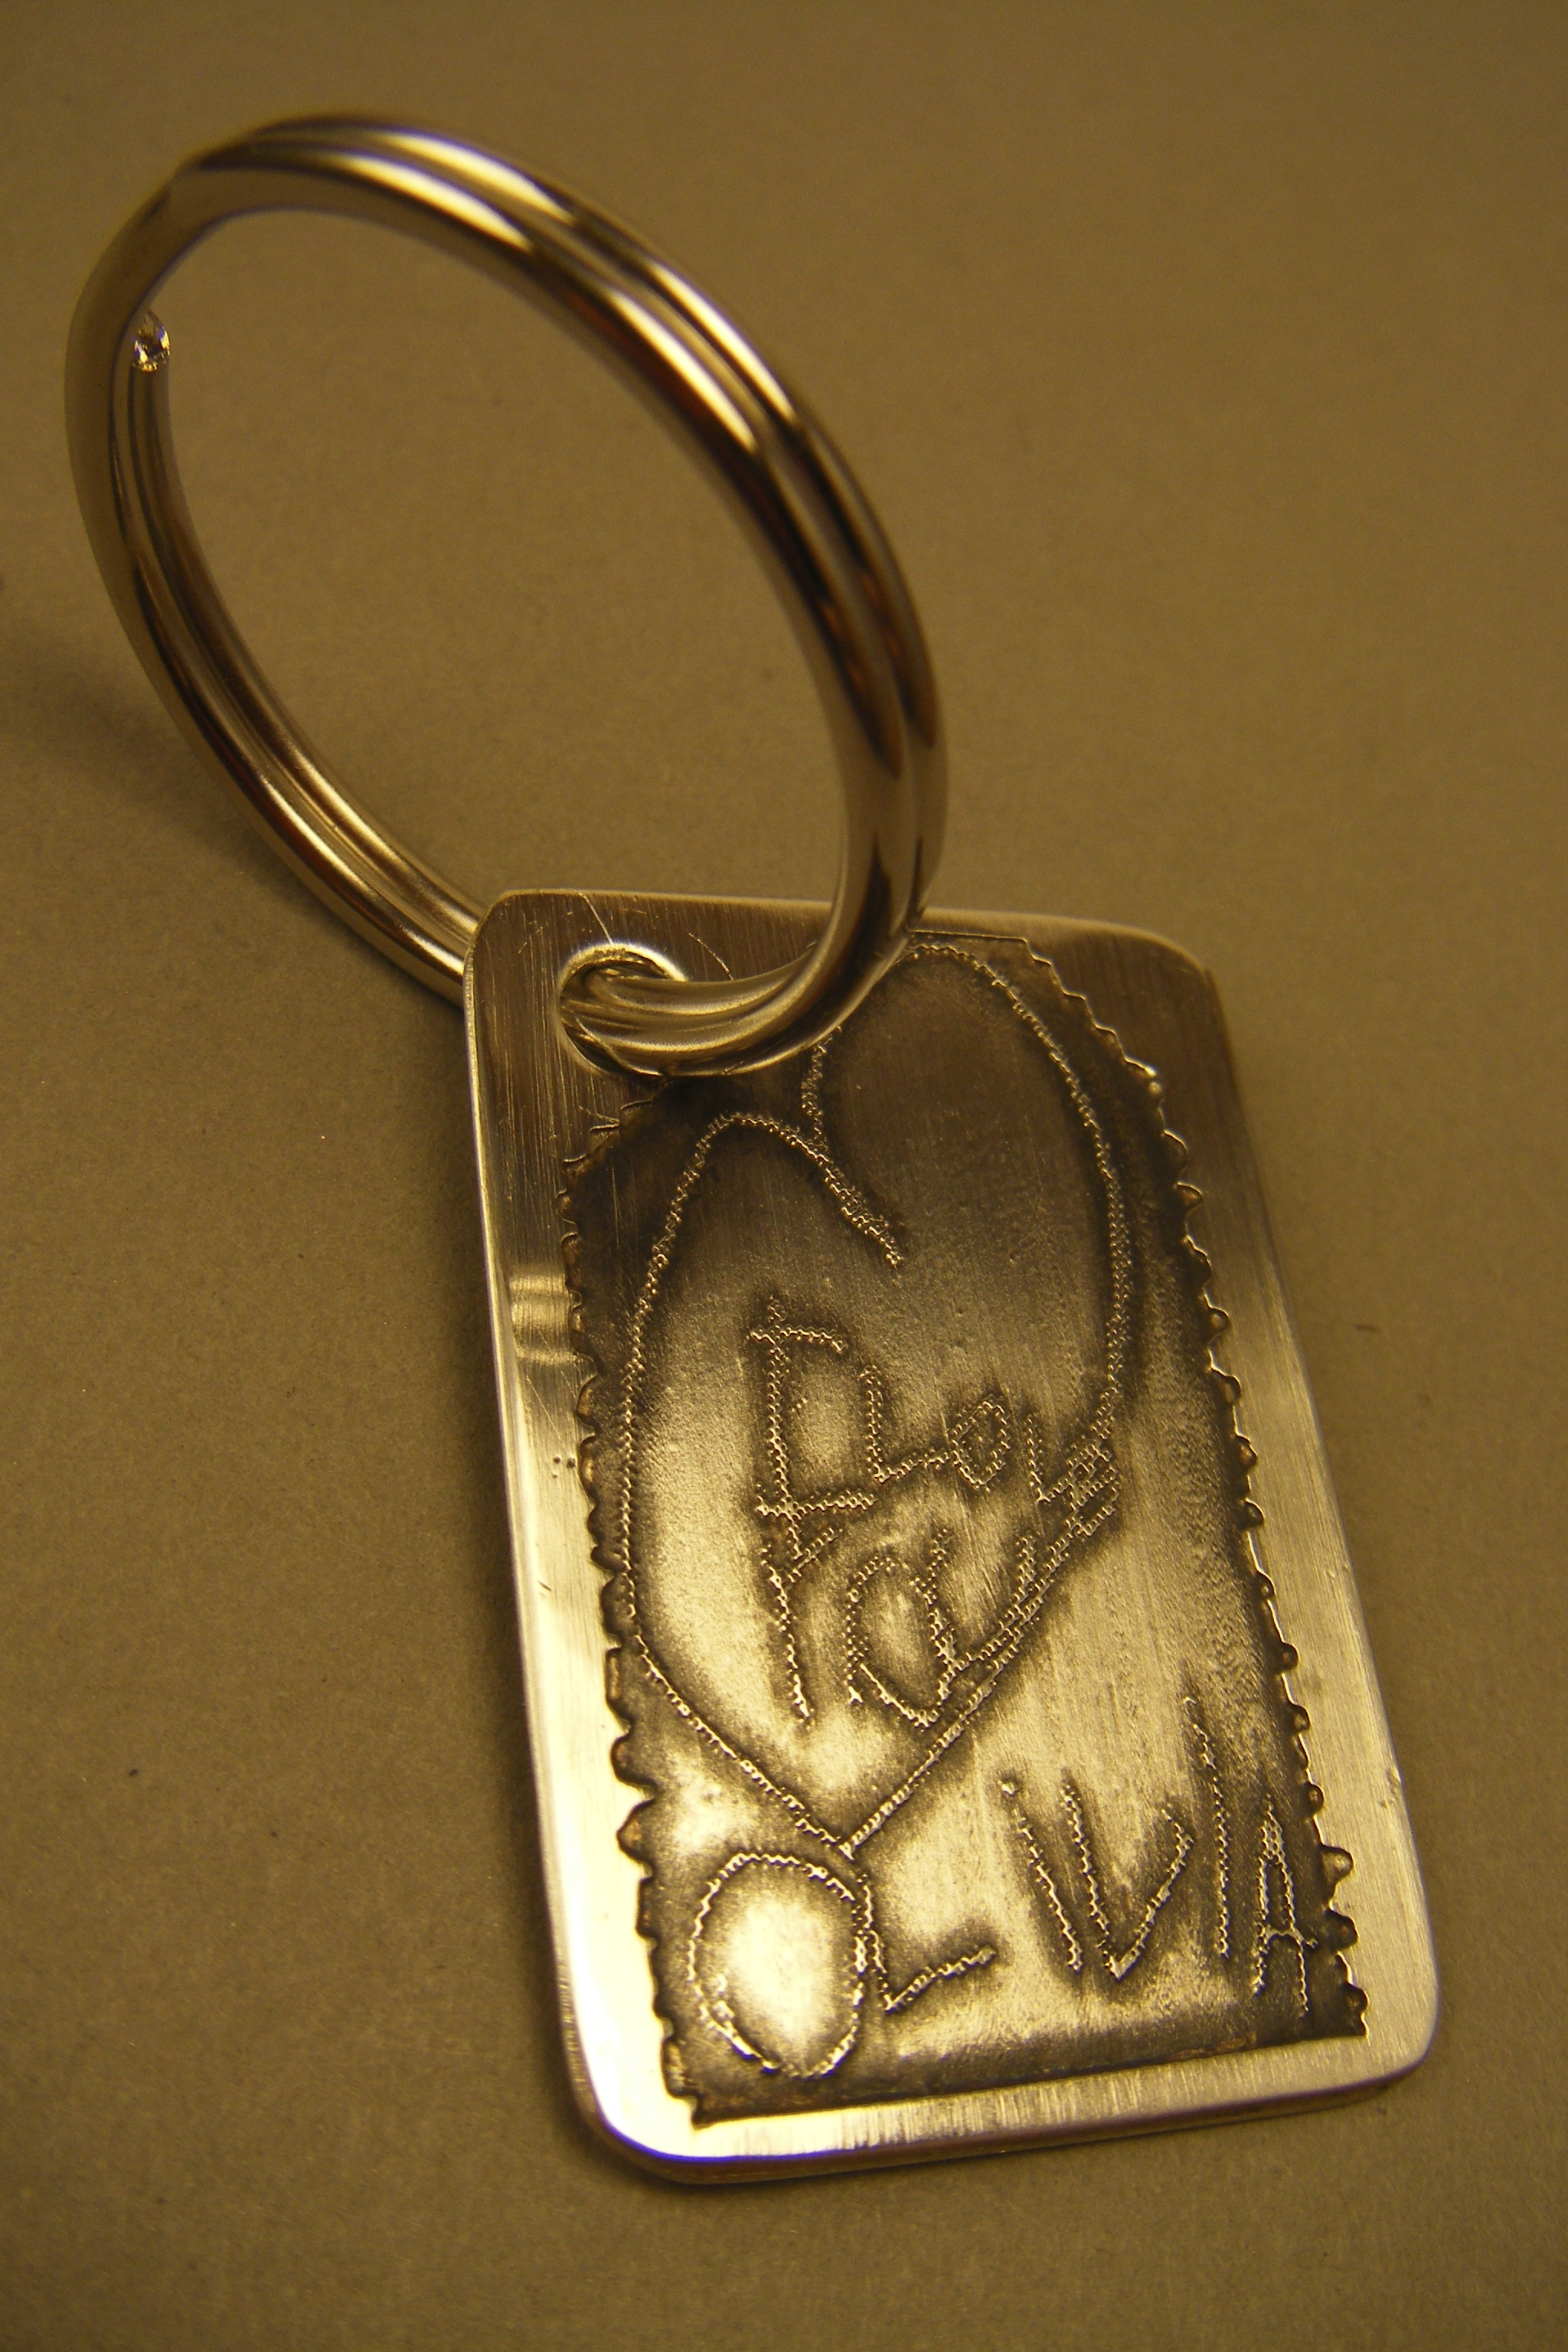 Etched Key Chain